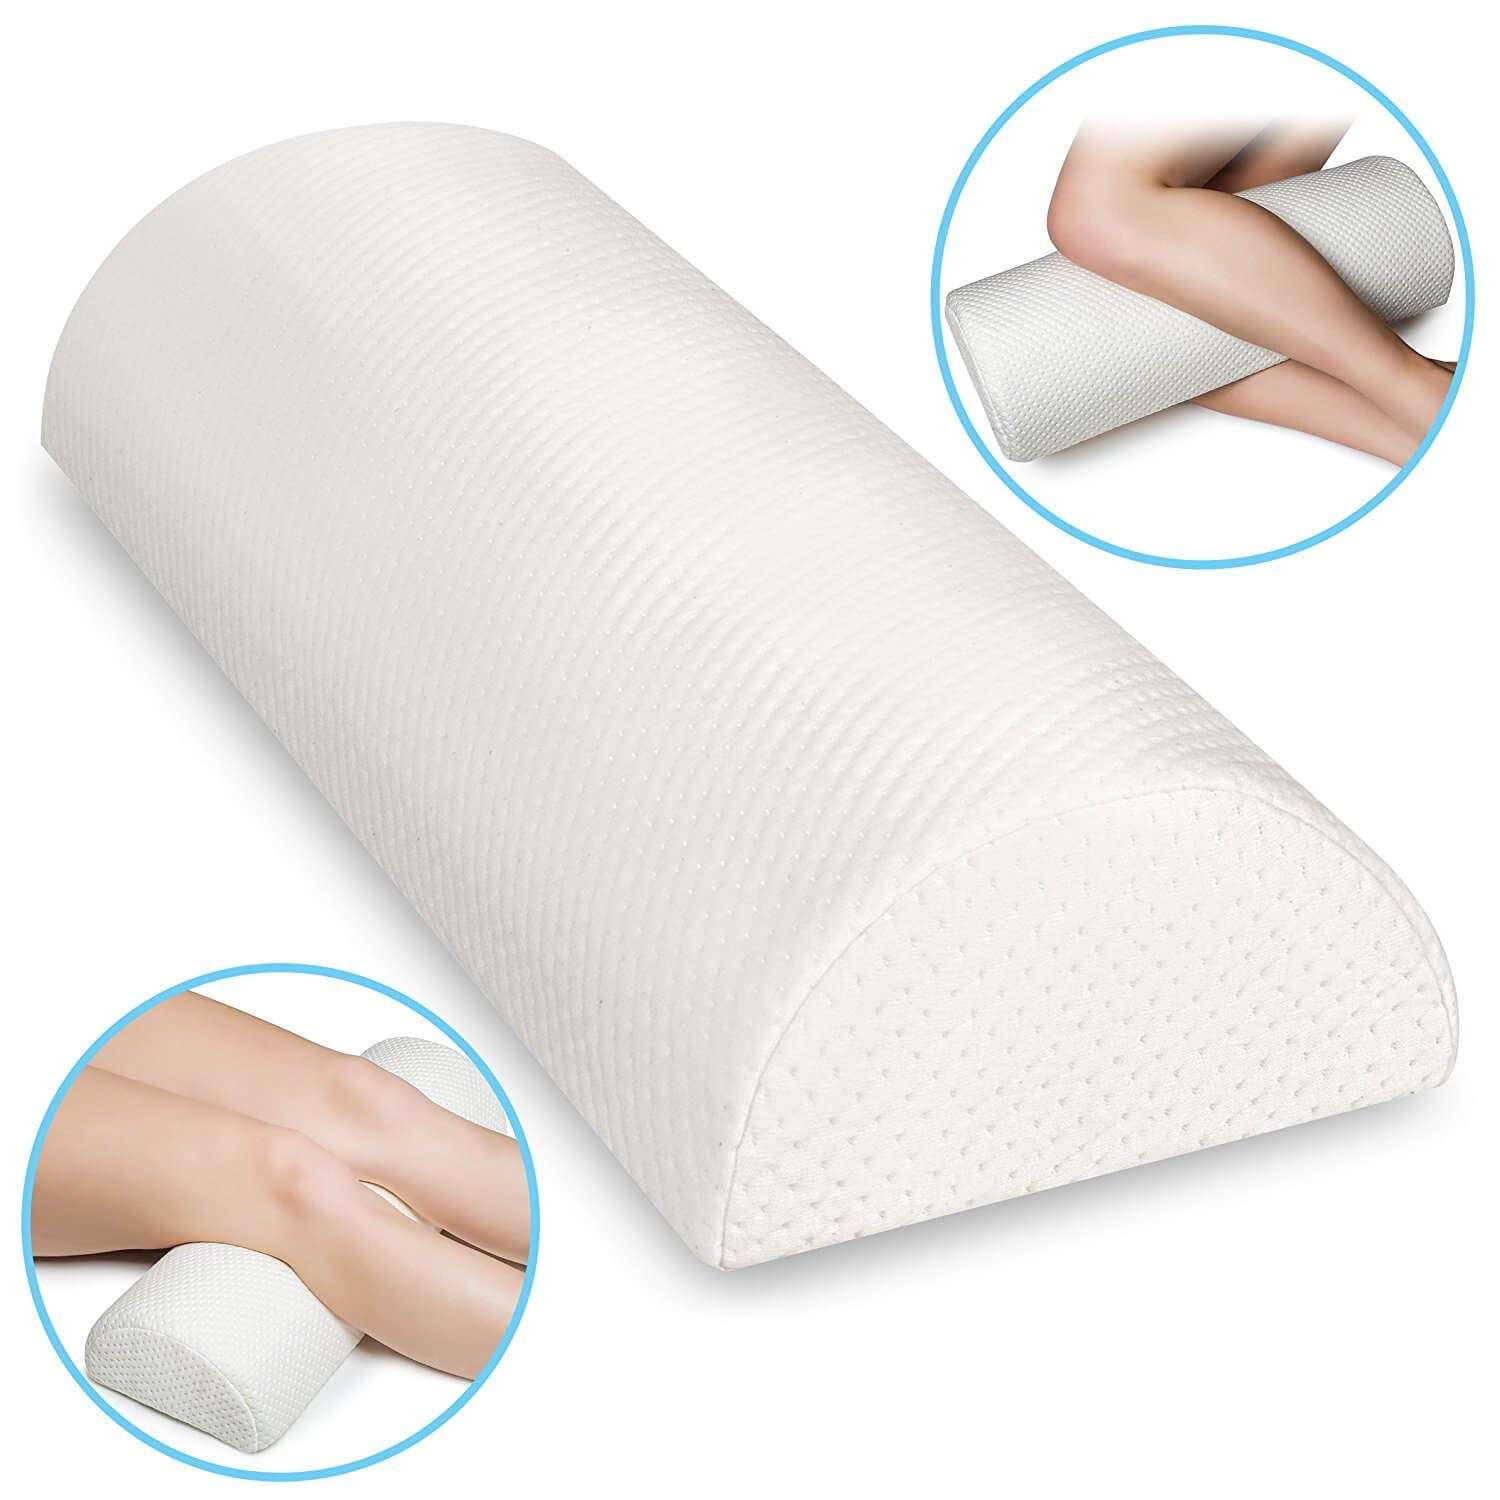 Best Popular Half Moon Foot Support Pillow for Office Rest, Pain Relief Bolster Improves Circulation with non-slip Bottom